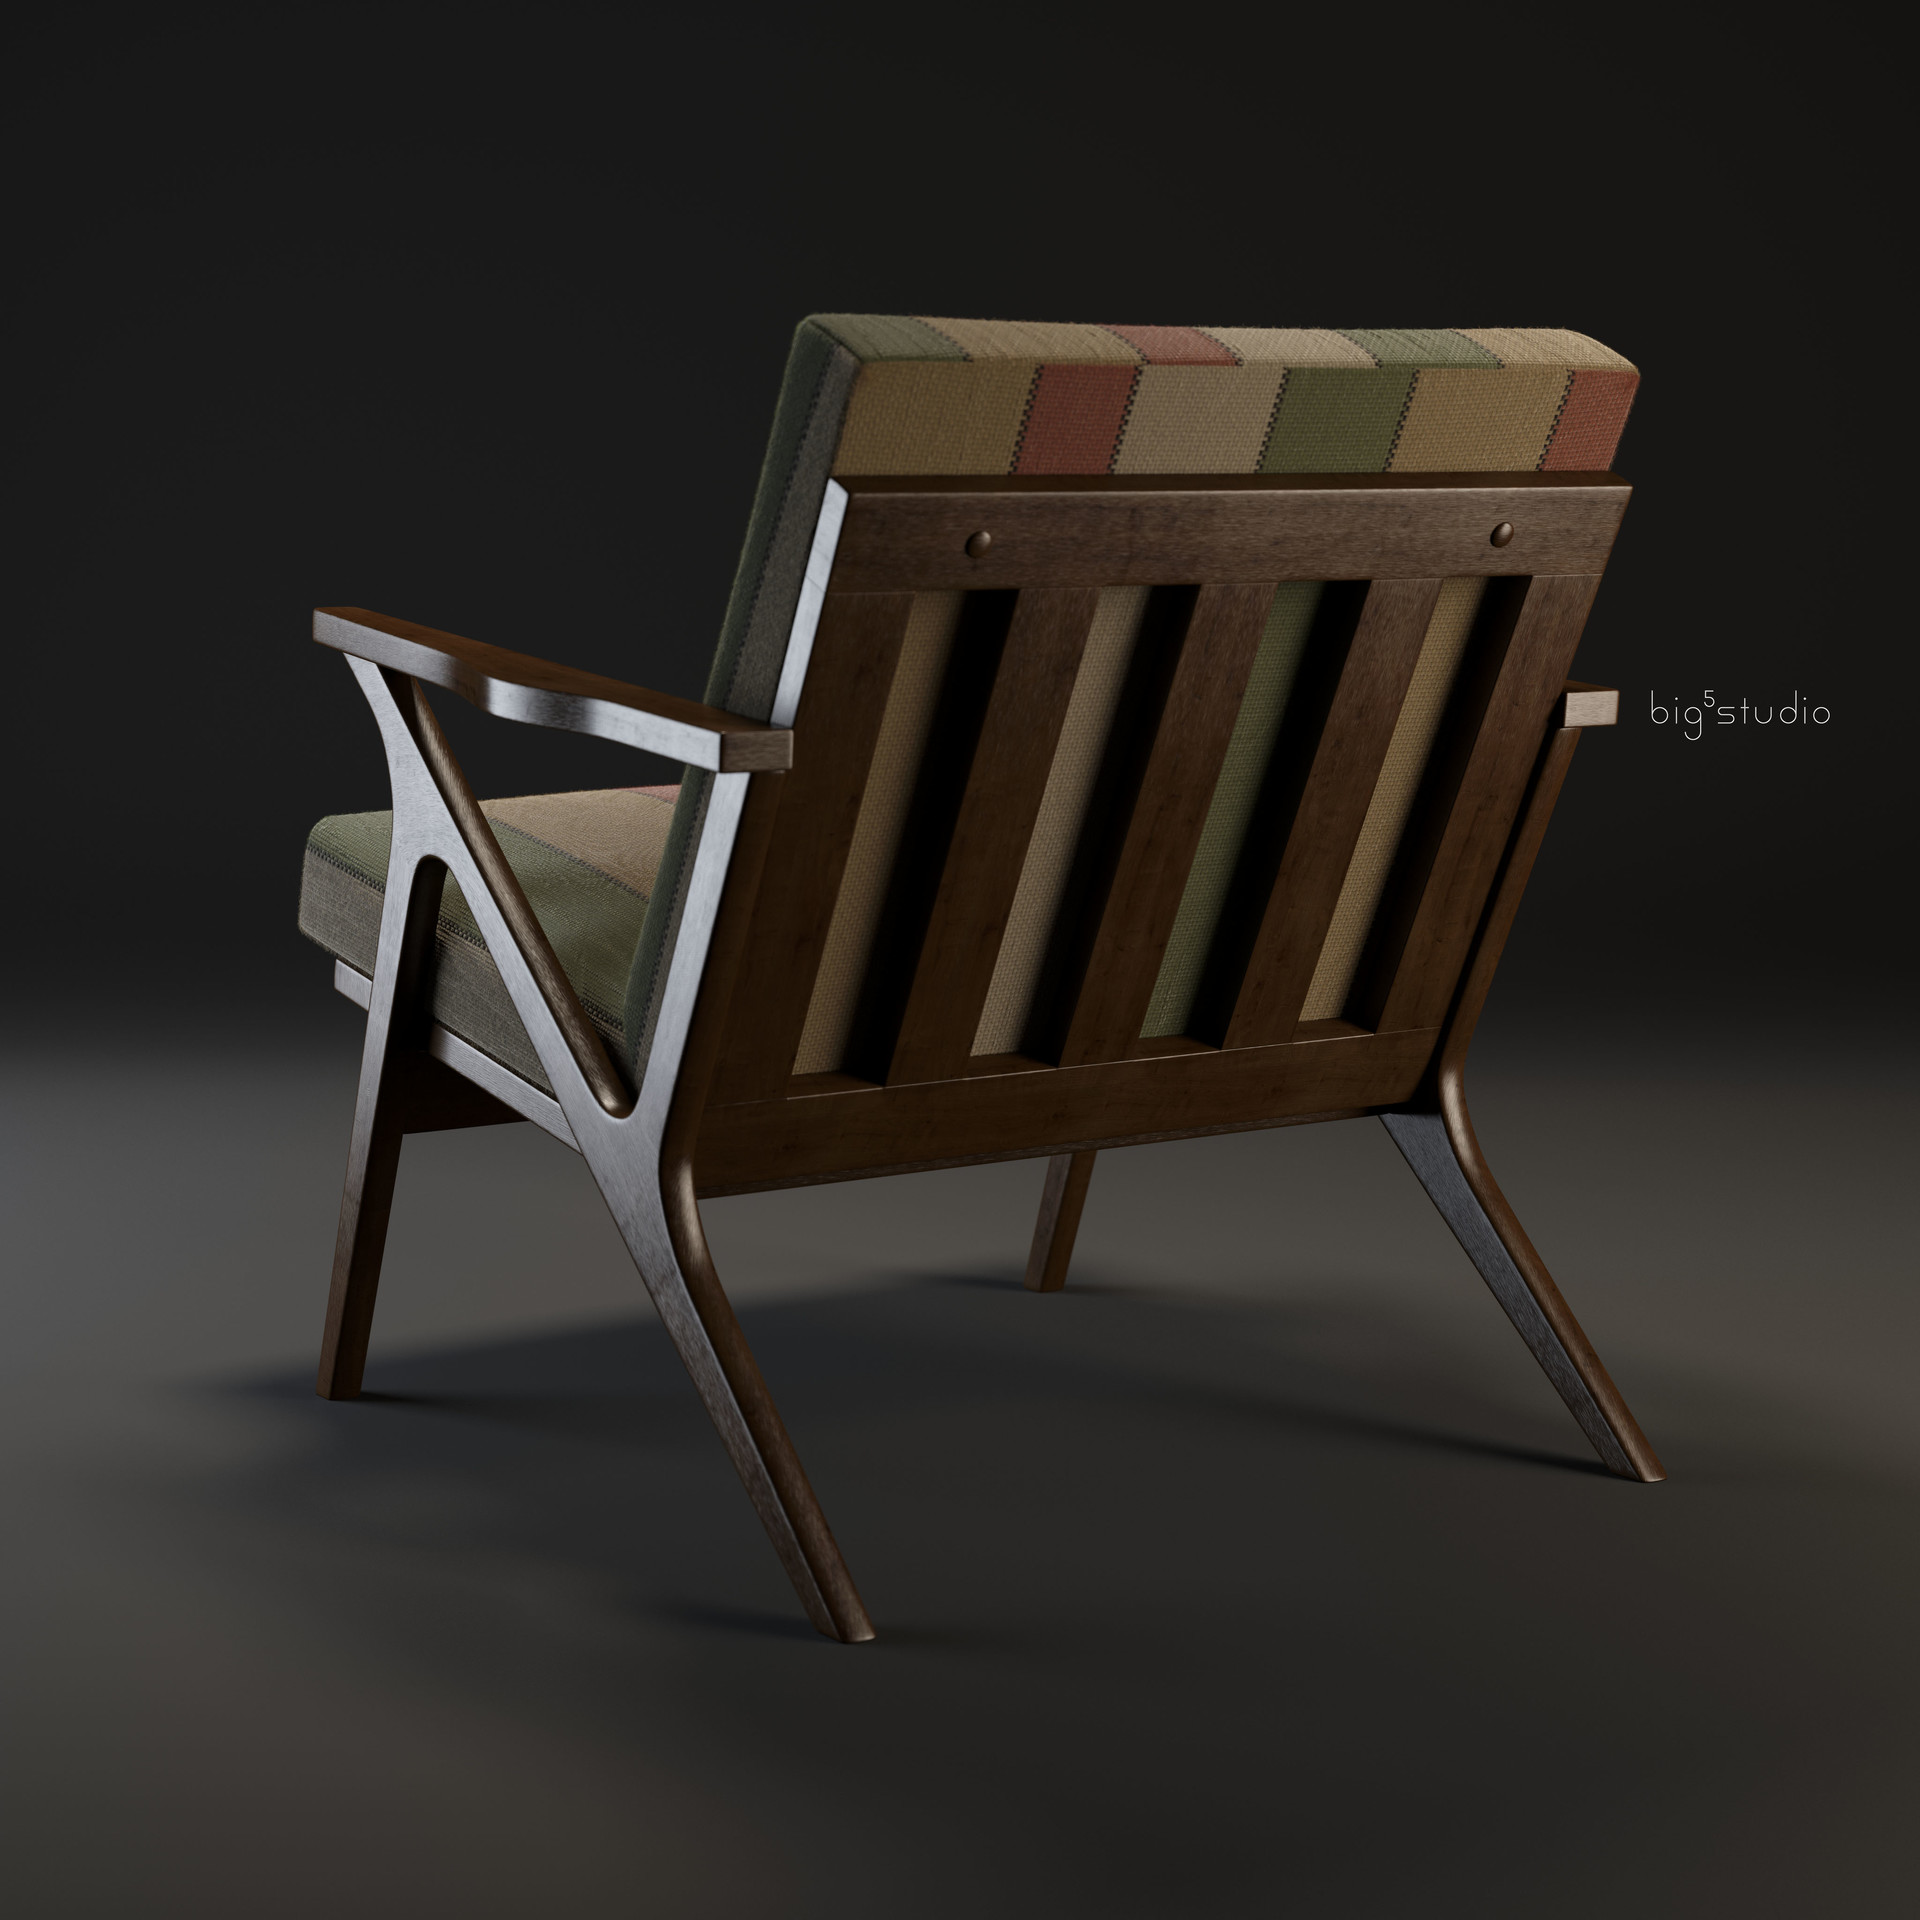 Neal biggs product chair cavettwoodframe0002 beauty